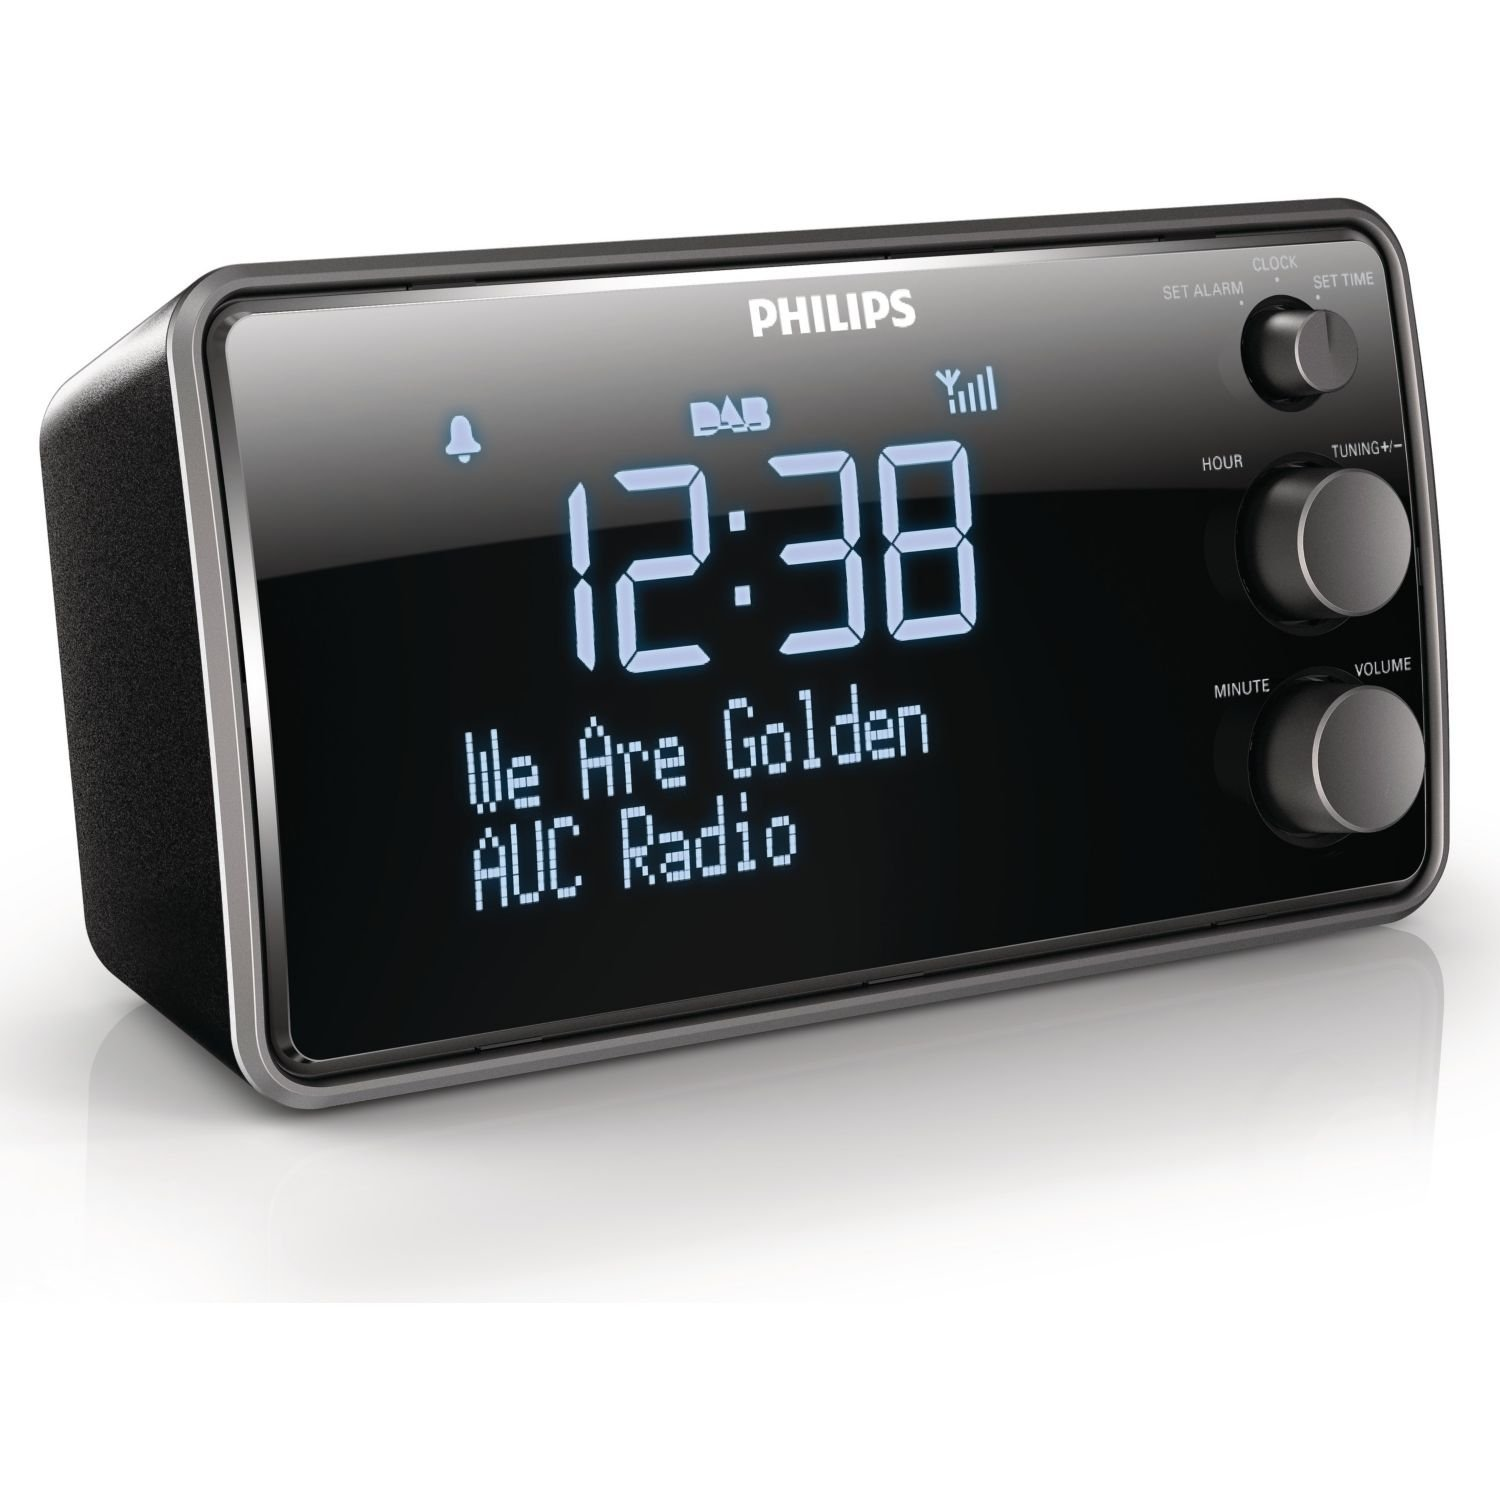 Philips AJB3552/12 Radiowecker - DAB+ Digitalradio im Test